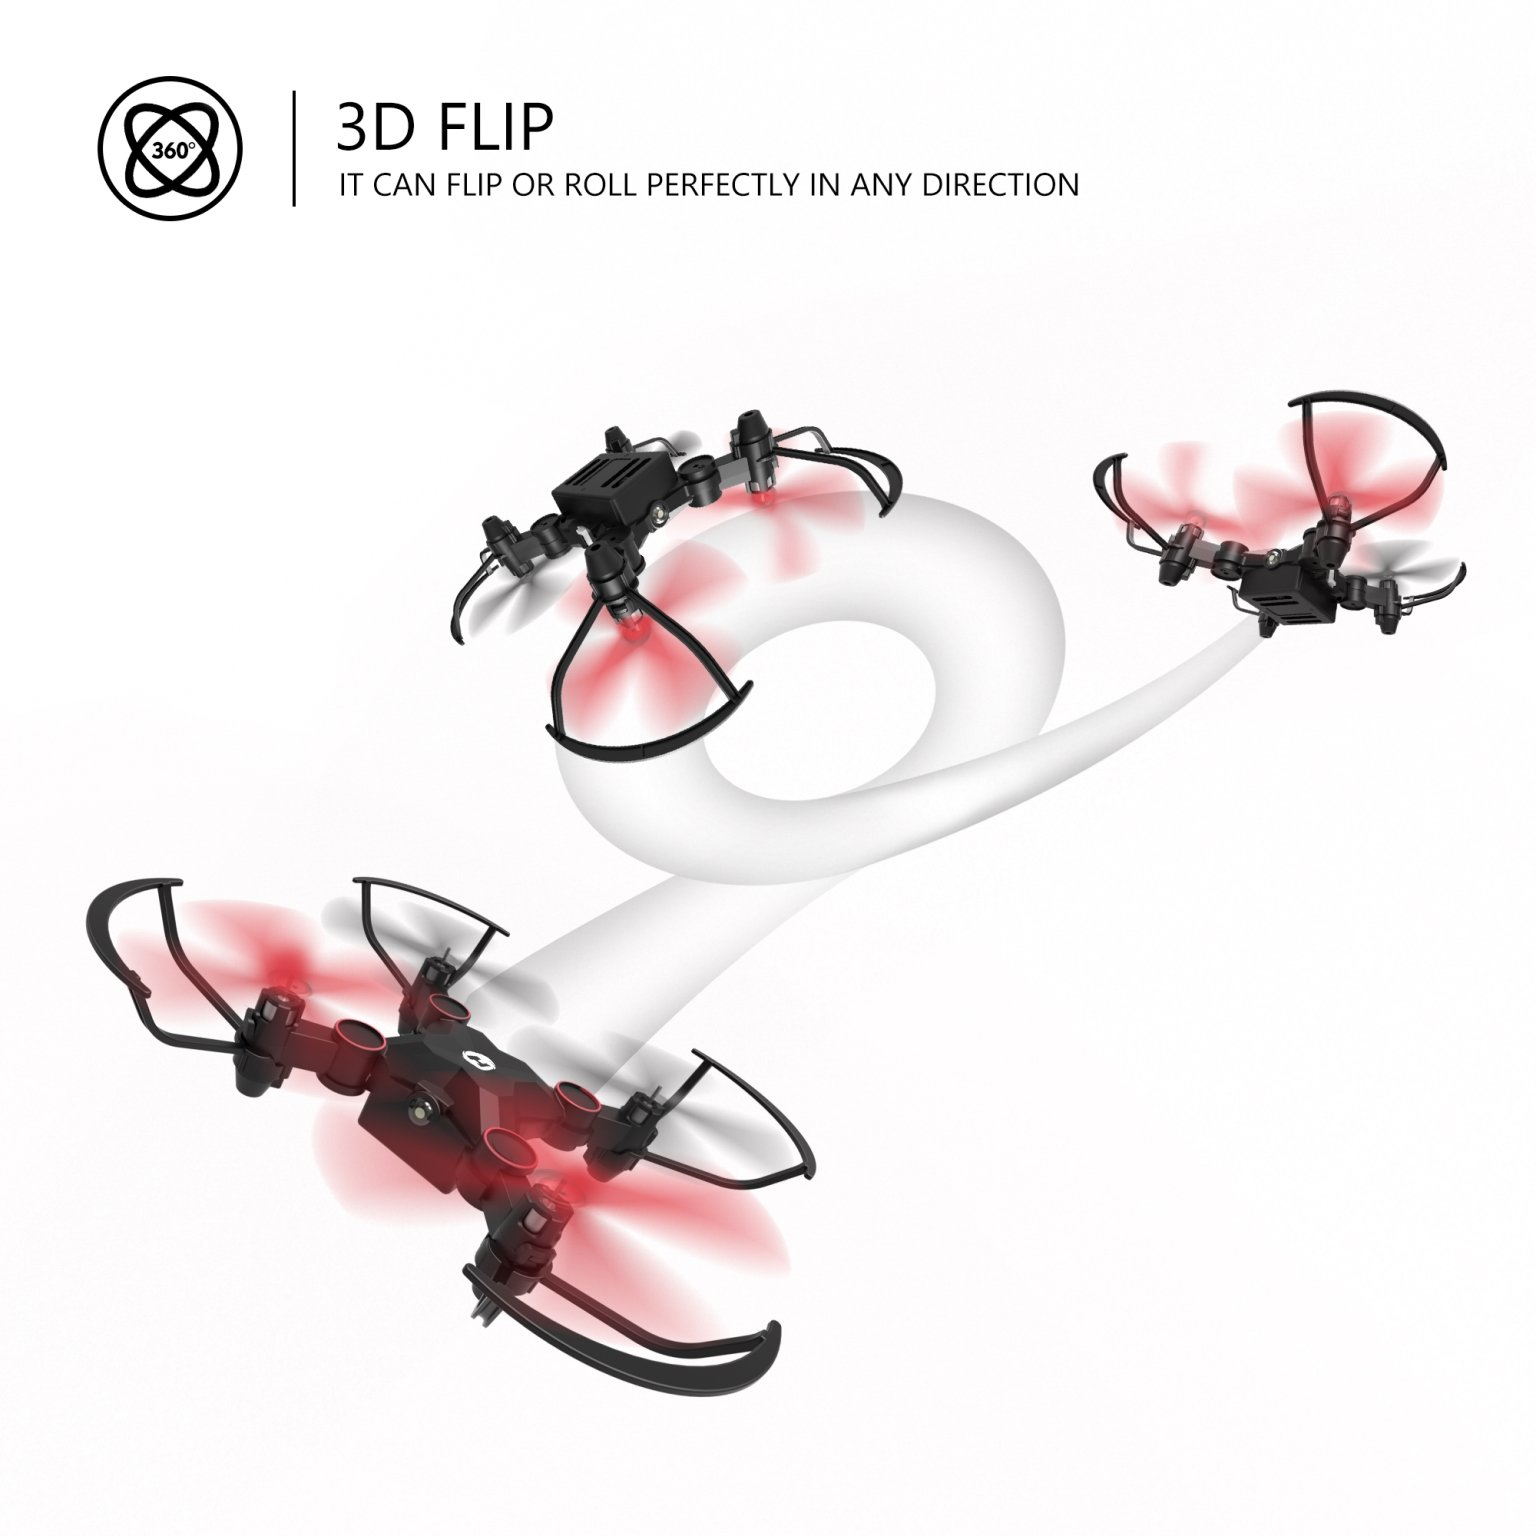 Holy Stone HS190 Foldable Mini Nano RC Drone for Kids Gift Portable Pocket Quadcopter with Altitude Hold 3D Flips and Headless Mode Easy to Fly for Beginners by Holy Stone (Image #7)